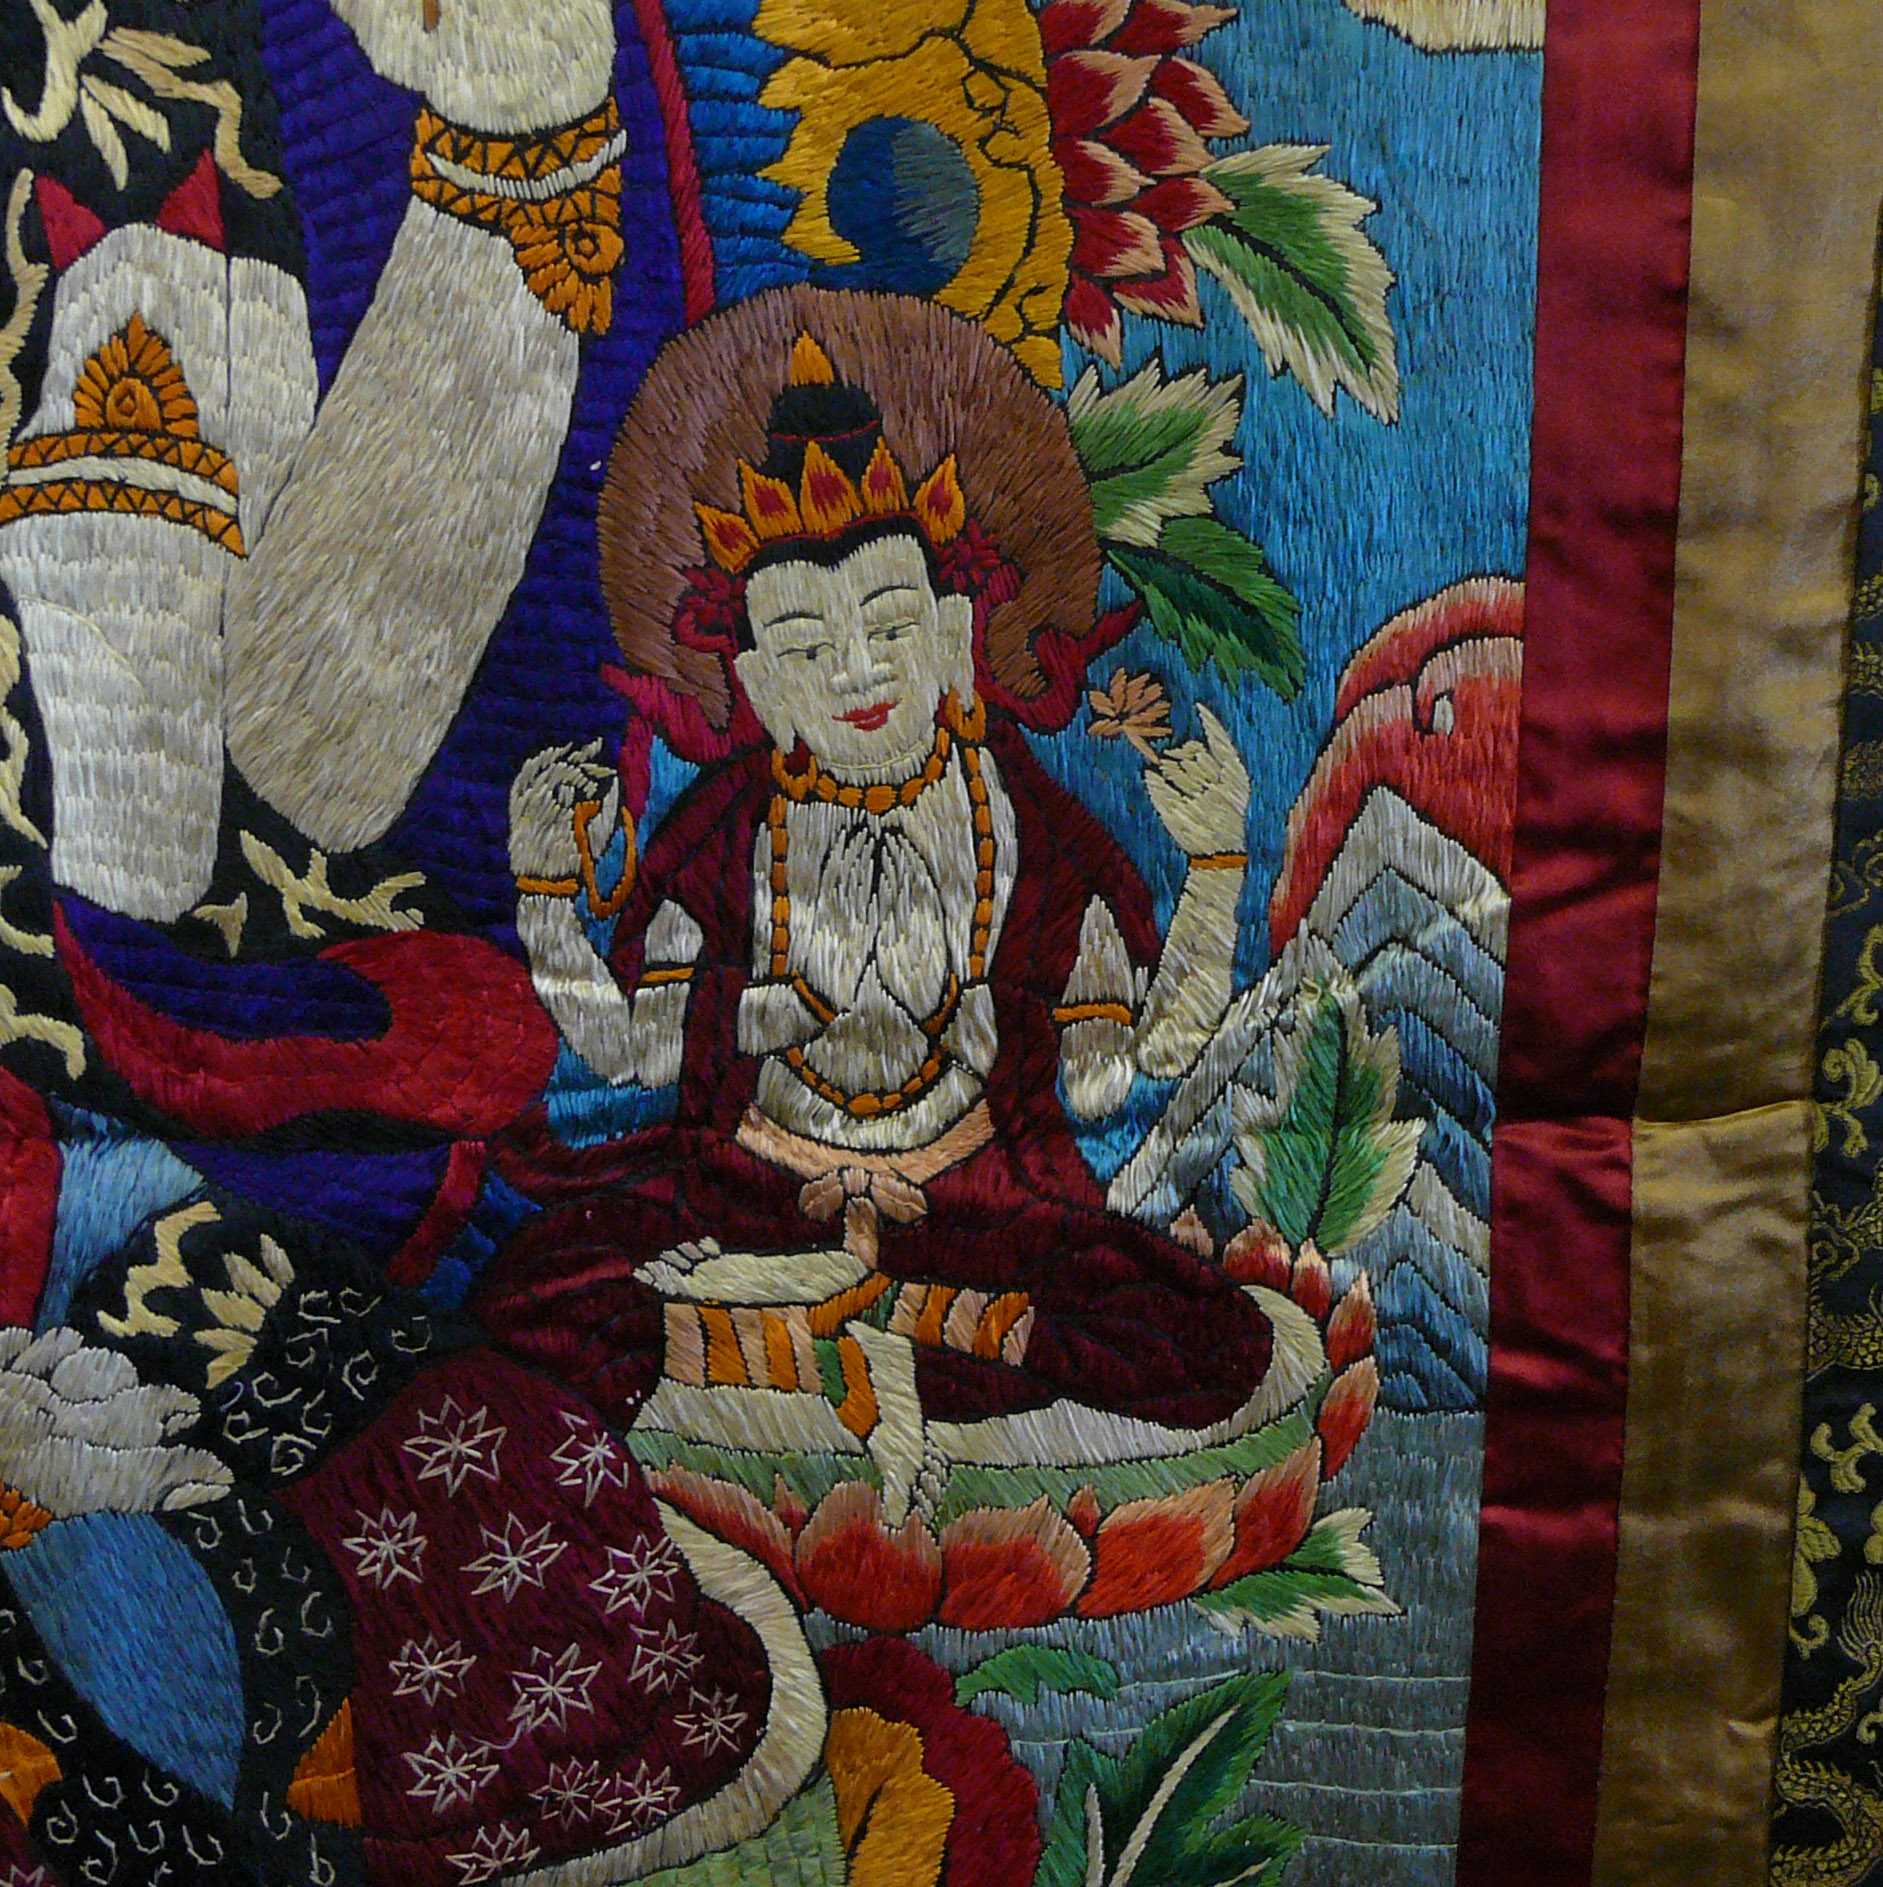 barclay buddhist personals Buddhist passions gives people who are part of the buddhist community a place to find one another you are welcome to use buddhist passions solely as a dating site, since it has all the major features found on mainstream dating sites (eg photo personals, groups, chat, webcam video, email, forums, etc).